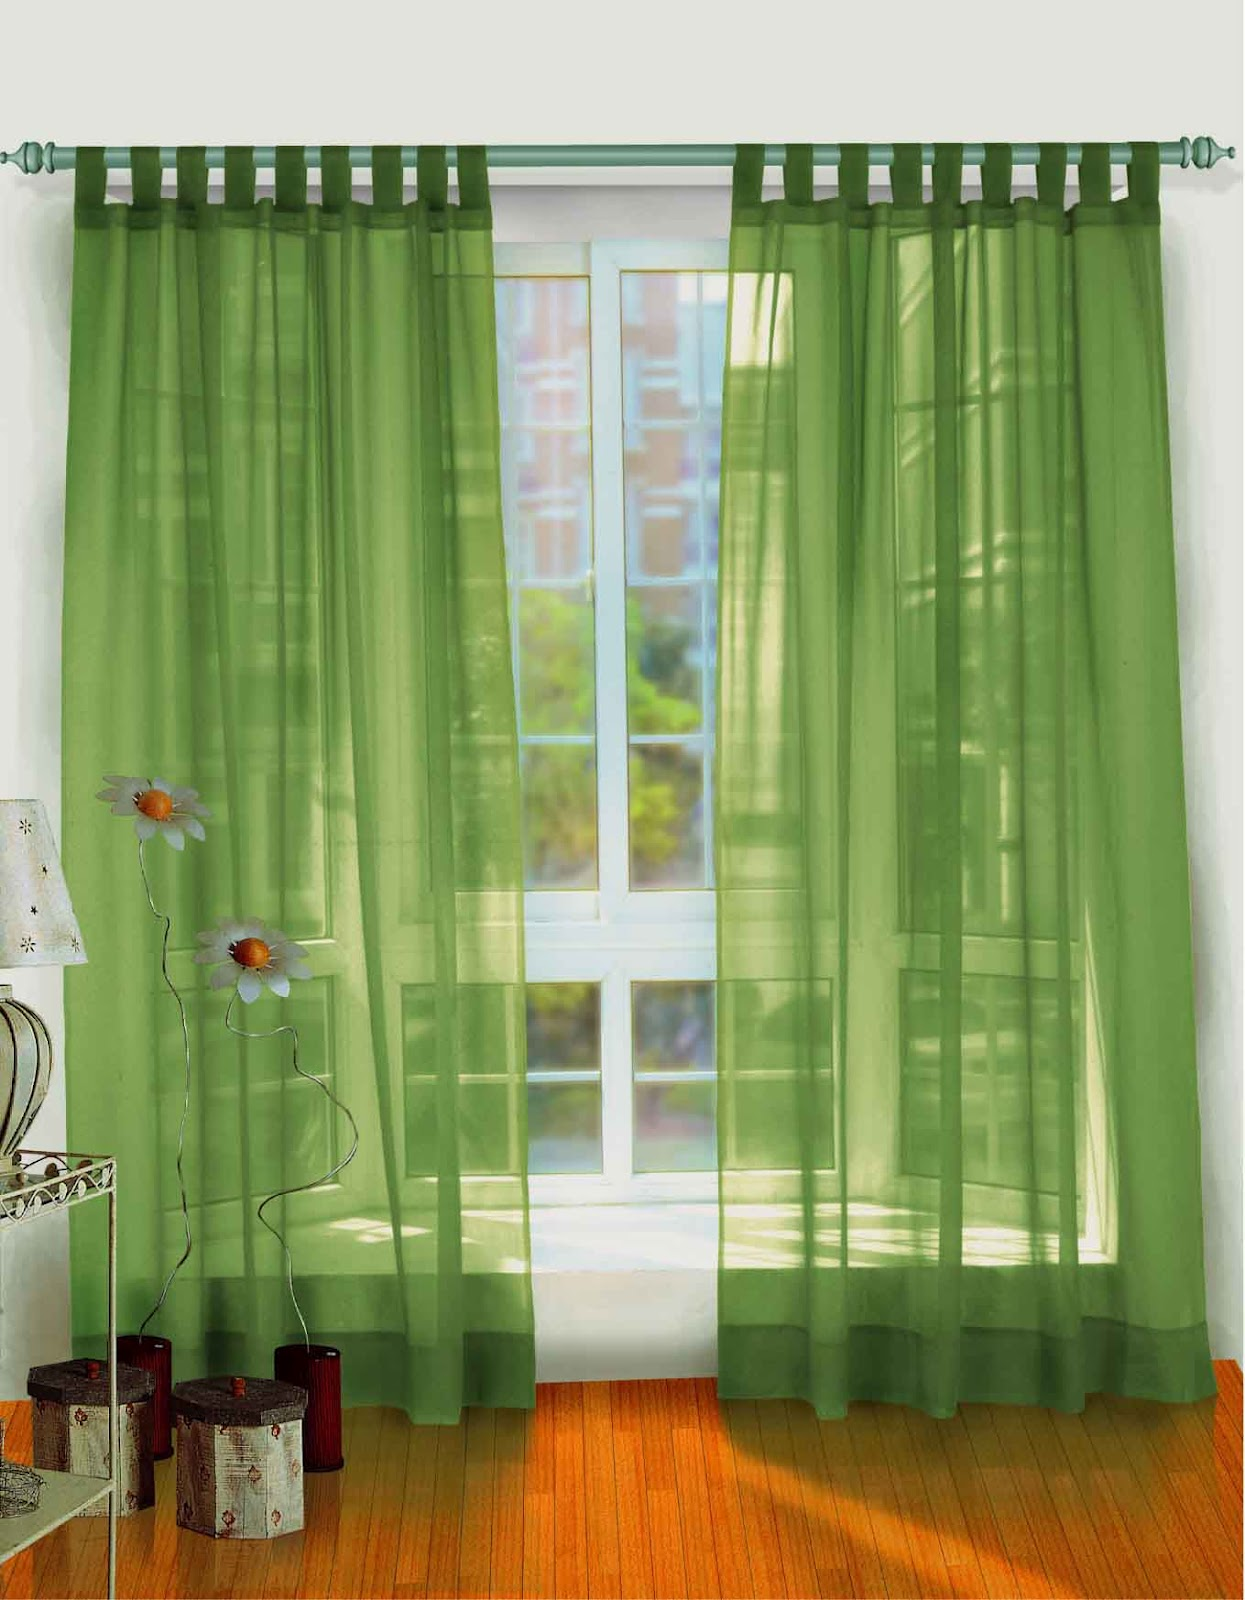 WINDOW AND DOOR CURTAINS DESIGN